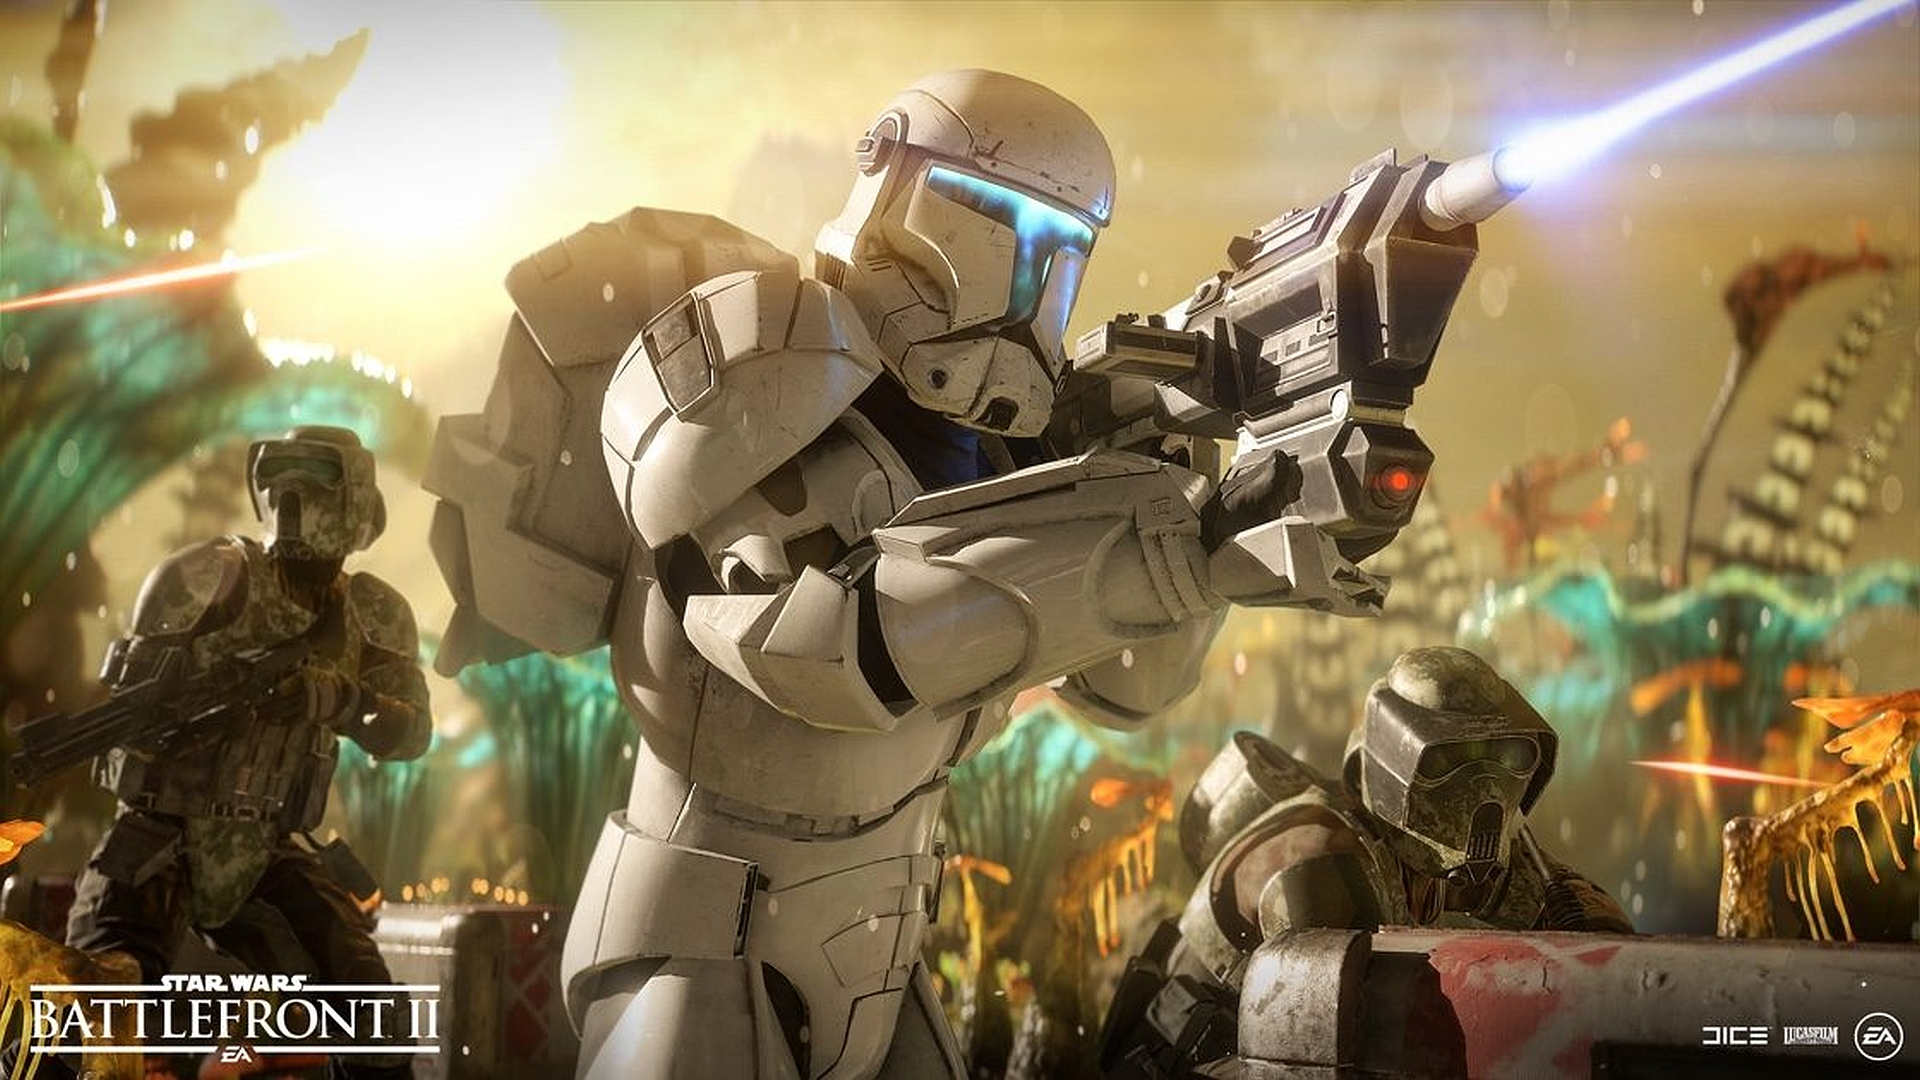 Star Wars Battlefront Ii Cooperation Update Video Showcases Pve Co Op Felucia And Clone Commandos